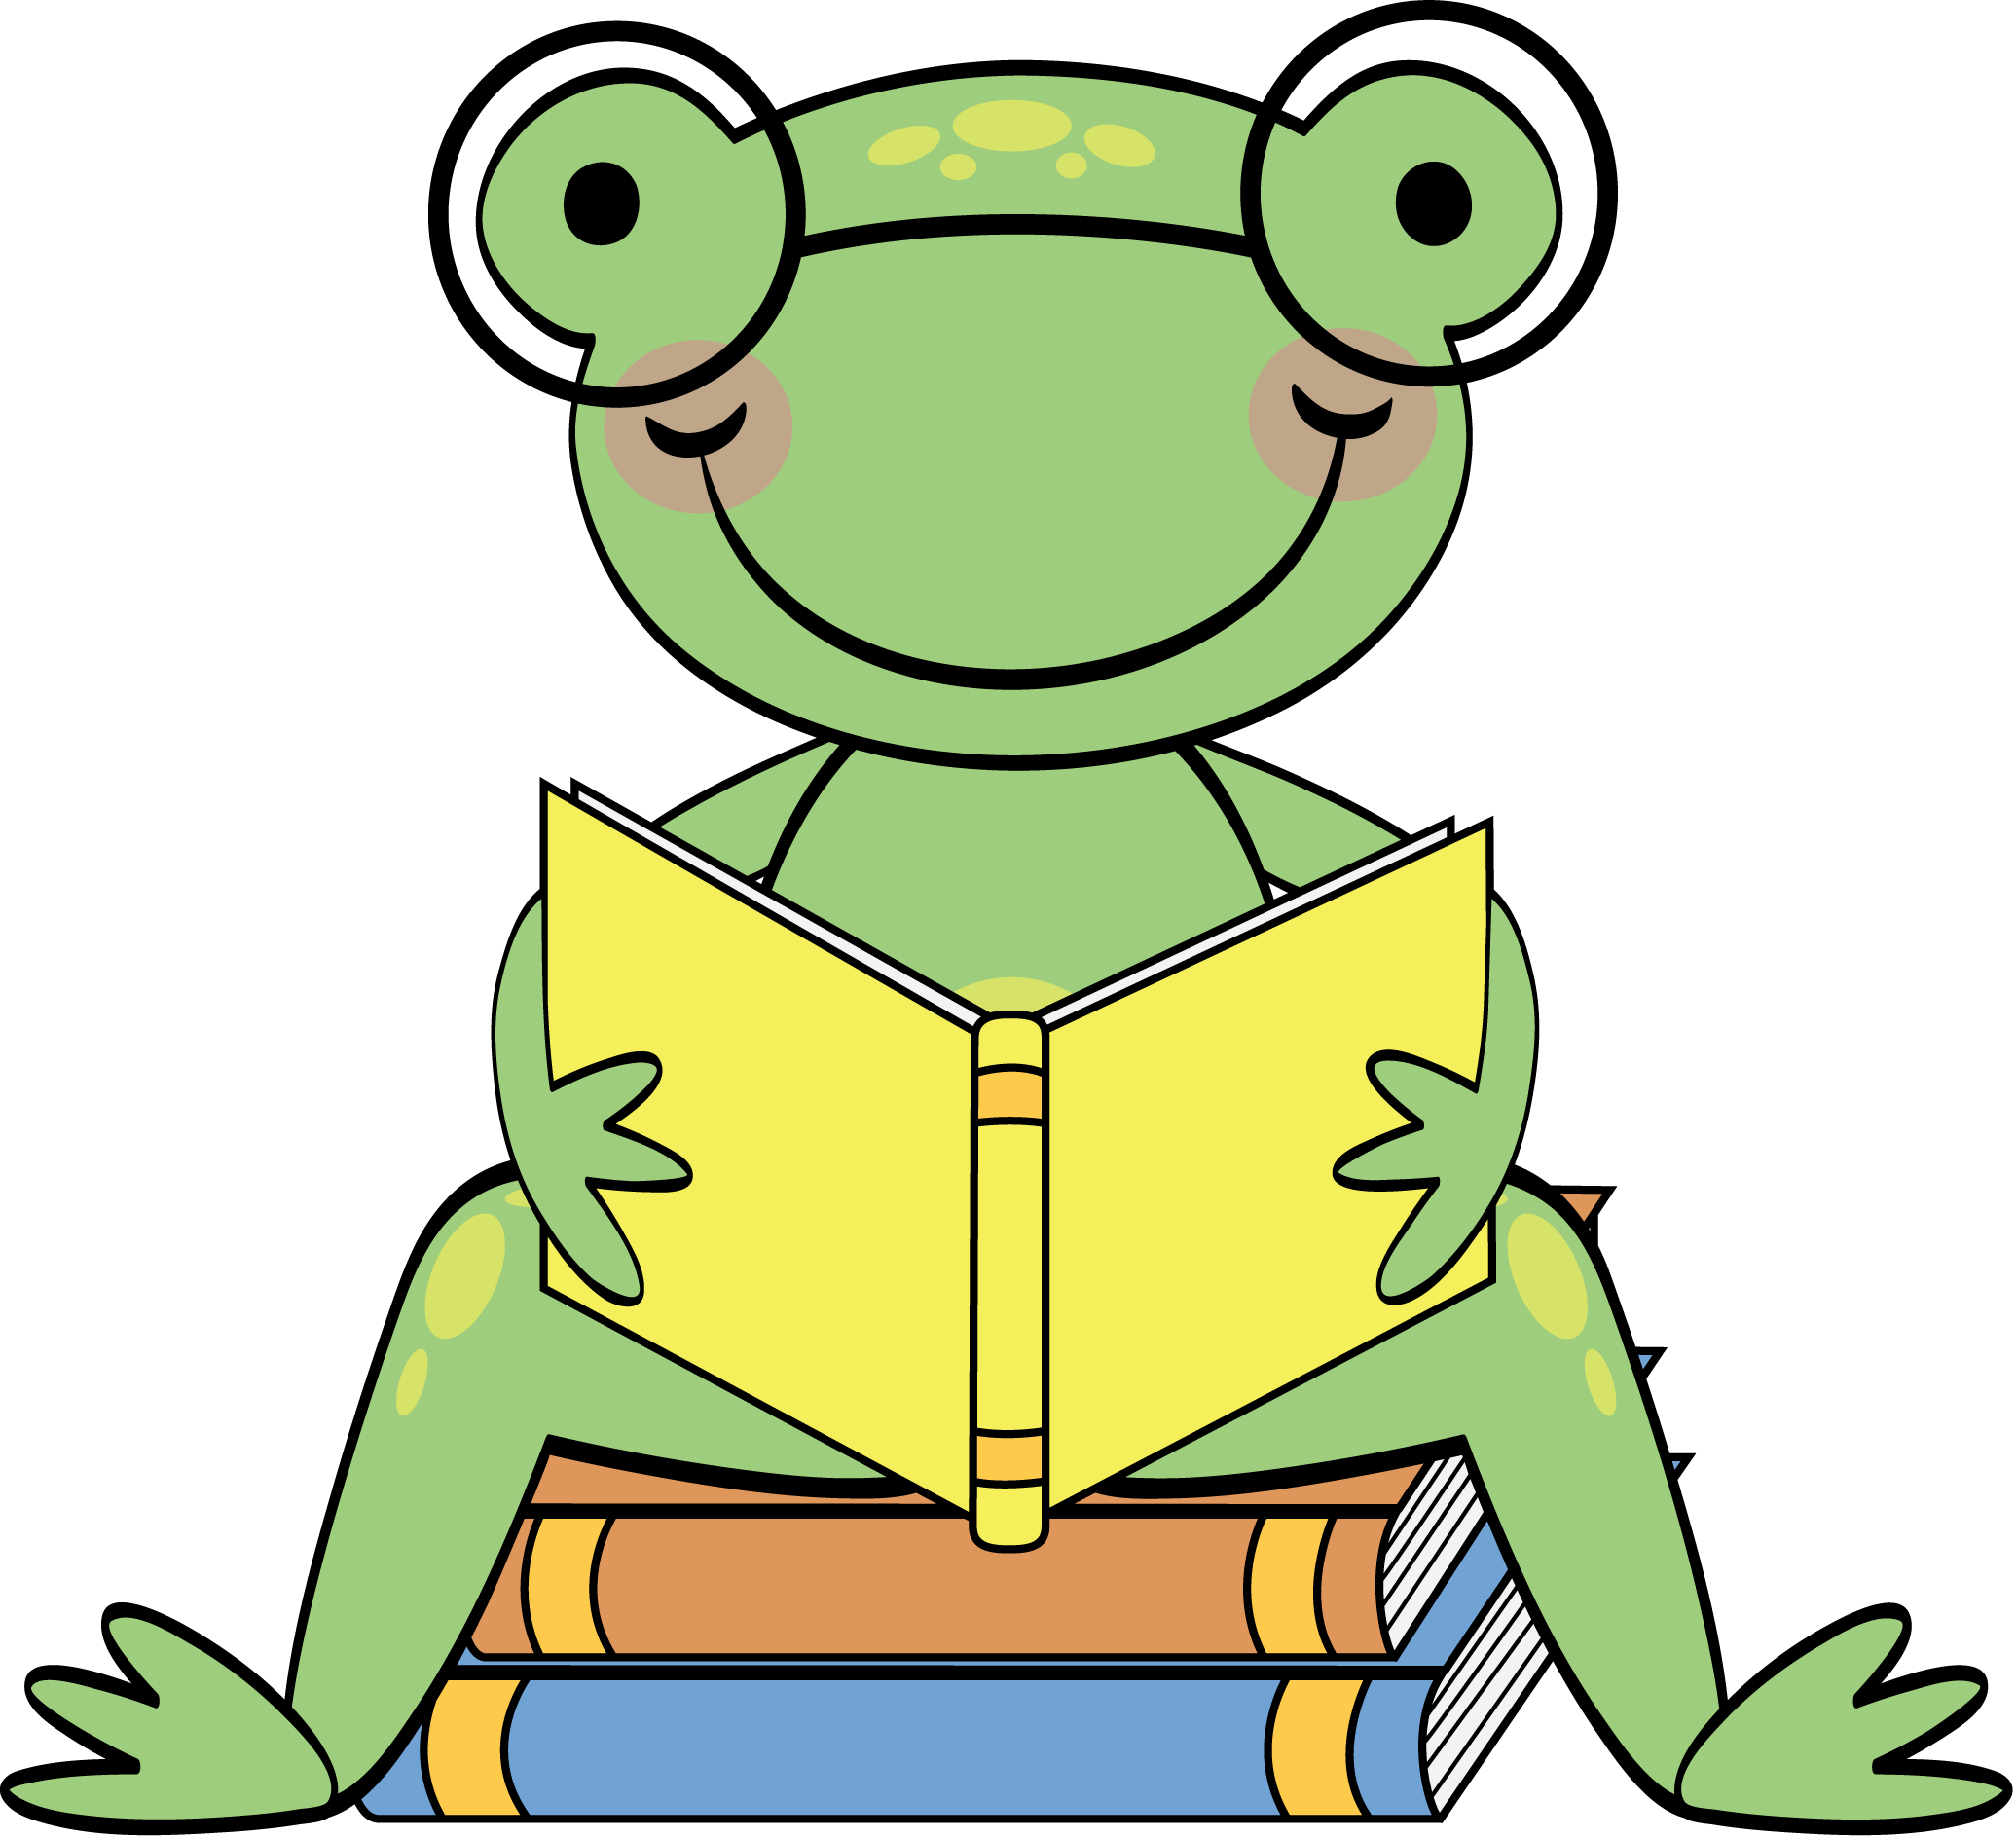 Clipart school frog, Clipart school frog Transparent FREE.